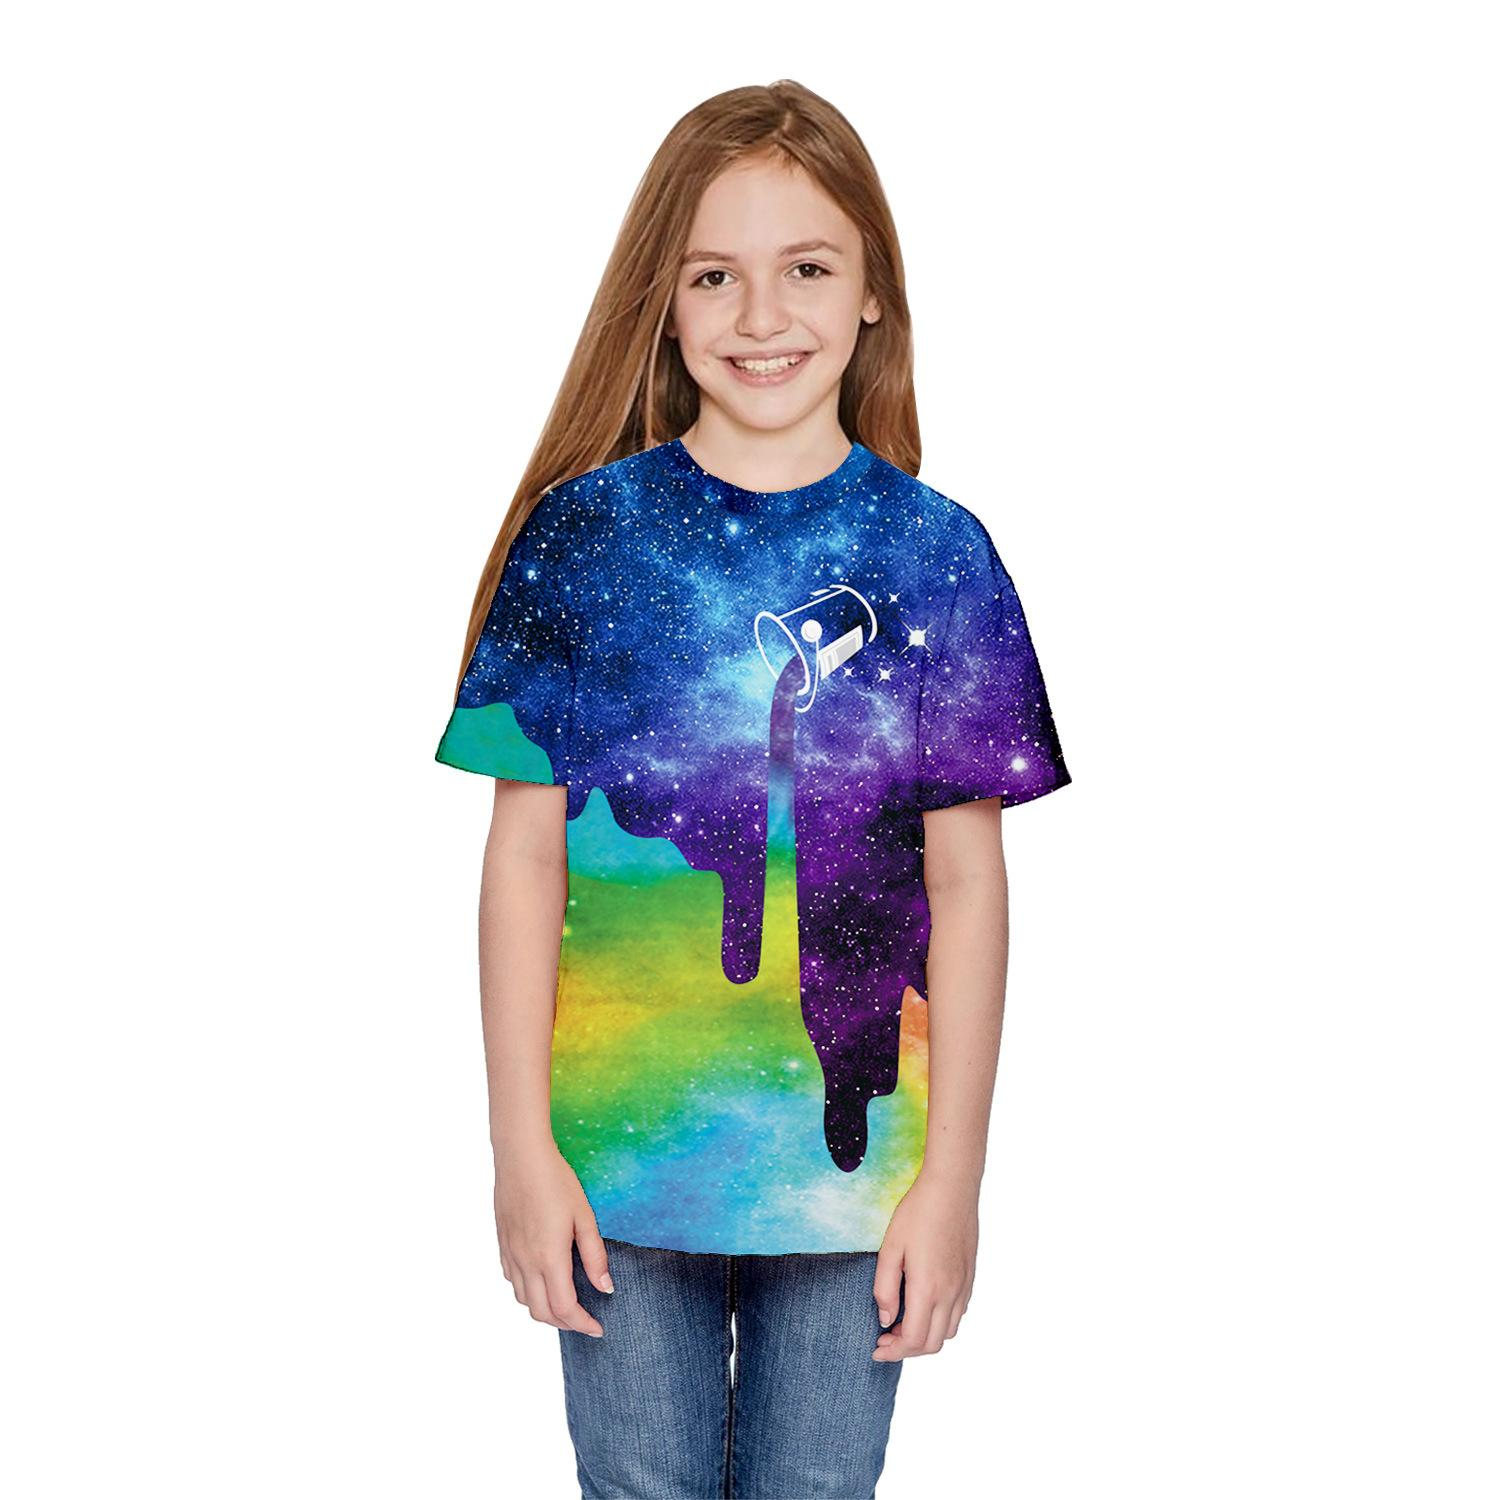 Wholesale of boys' 2019 summer t-shirts and girls' short-sleeved children's wear with starry sky digital printing